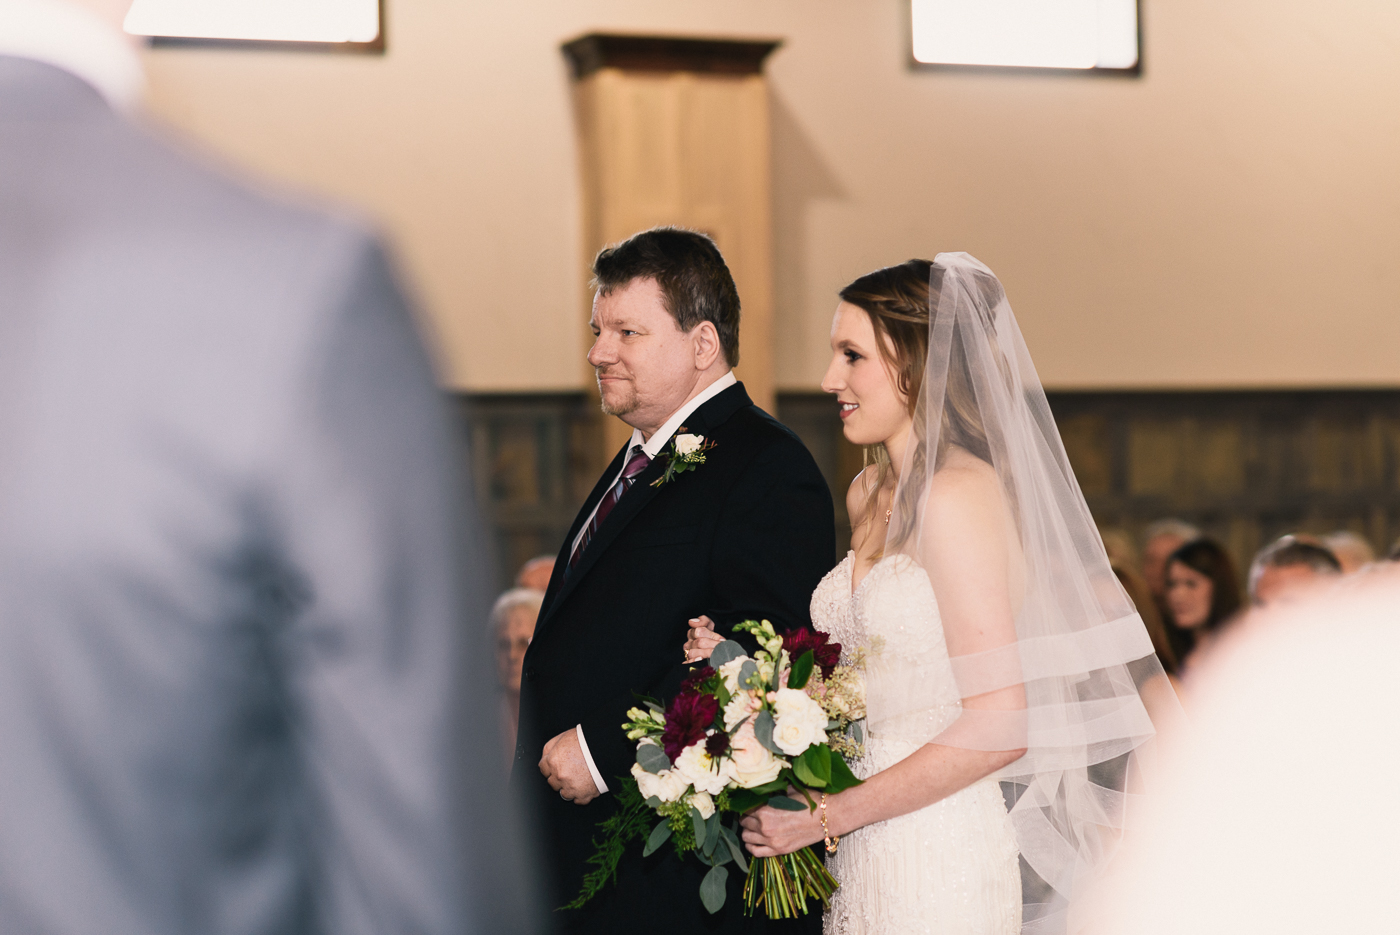 Father of the bride walking down the aisle wedding bouquet